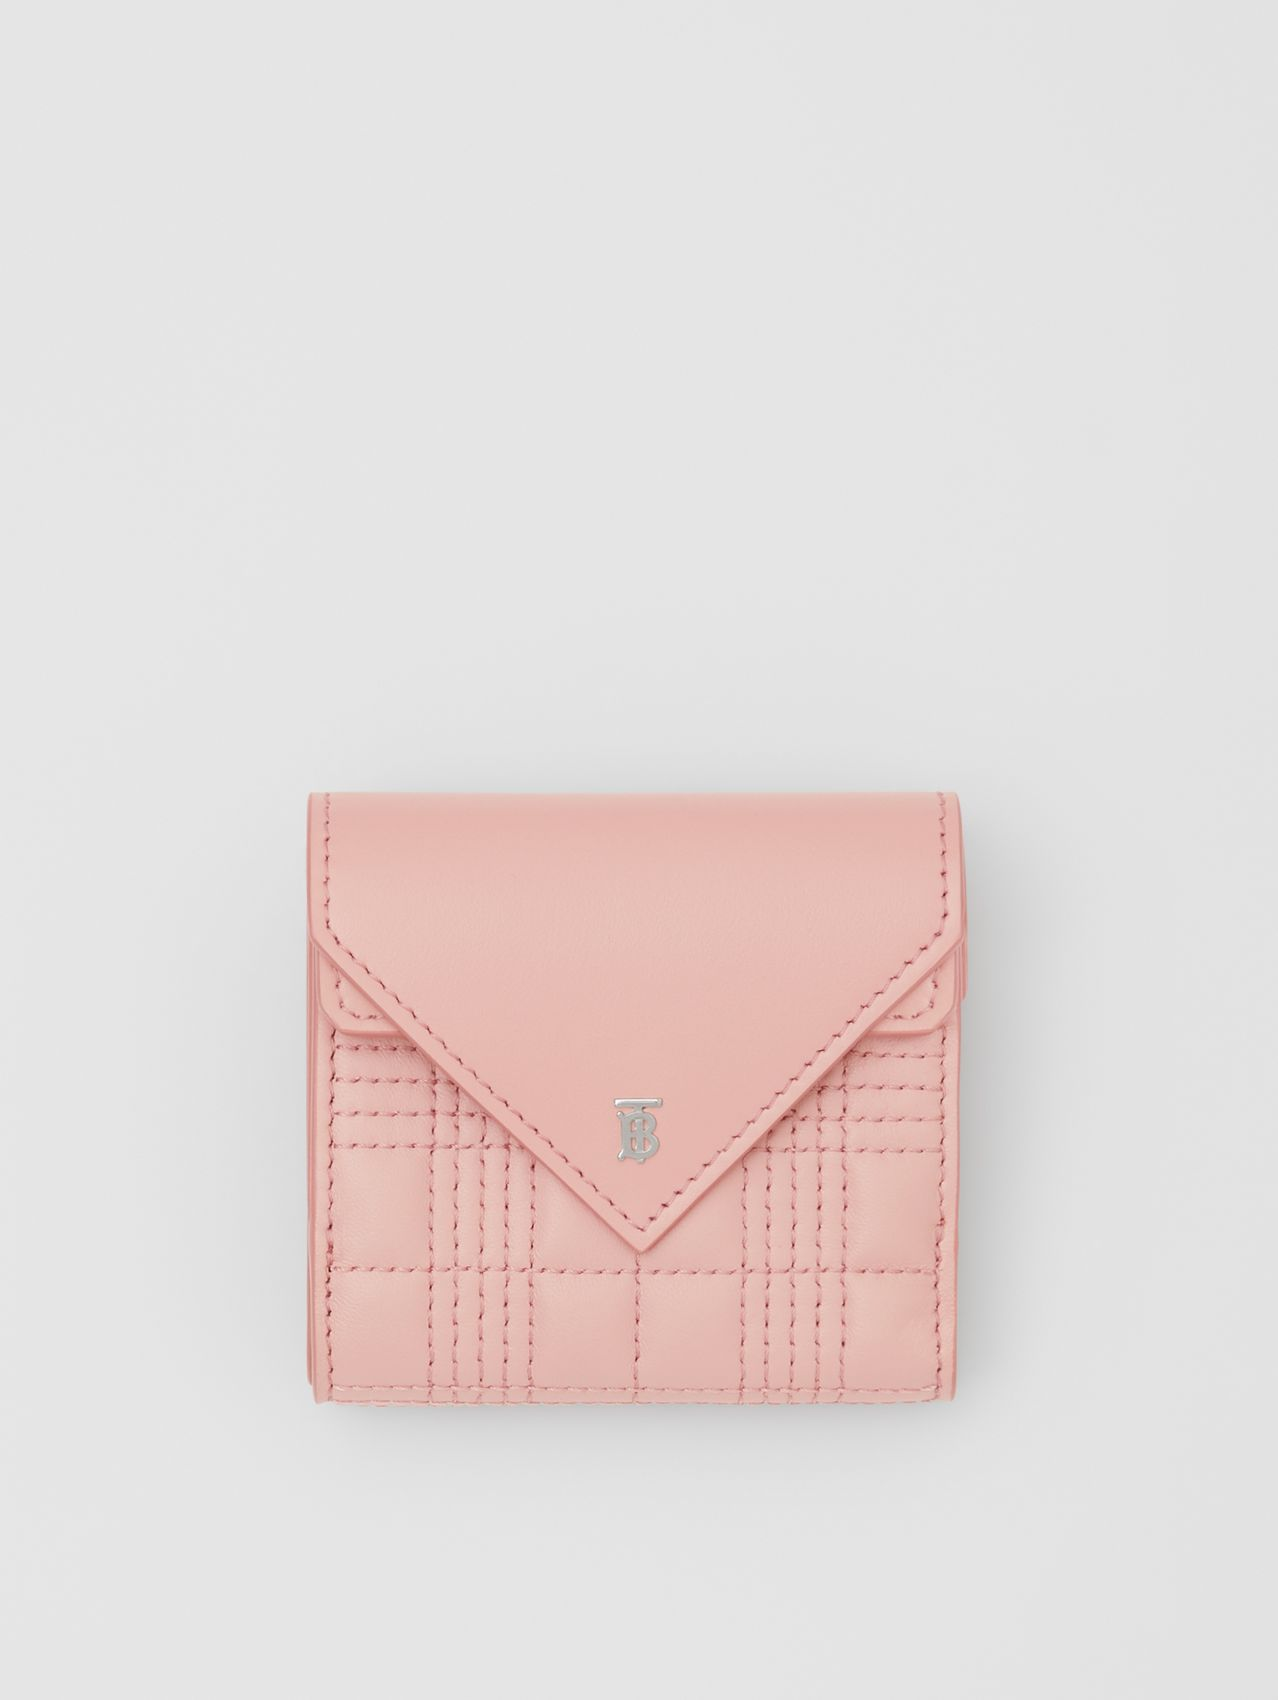 Quilted Lambskin Folding Wallet in Blush Pink